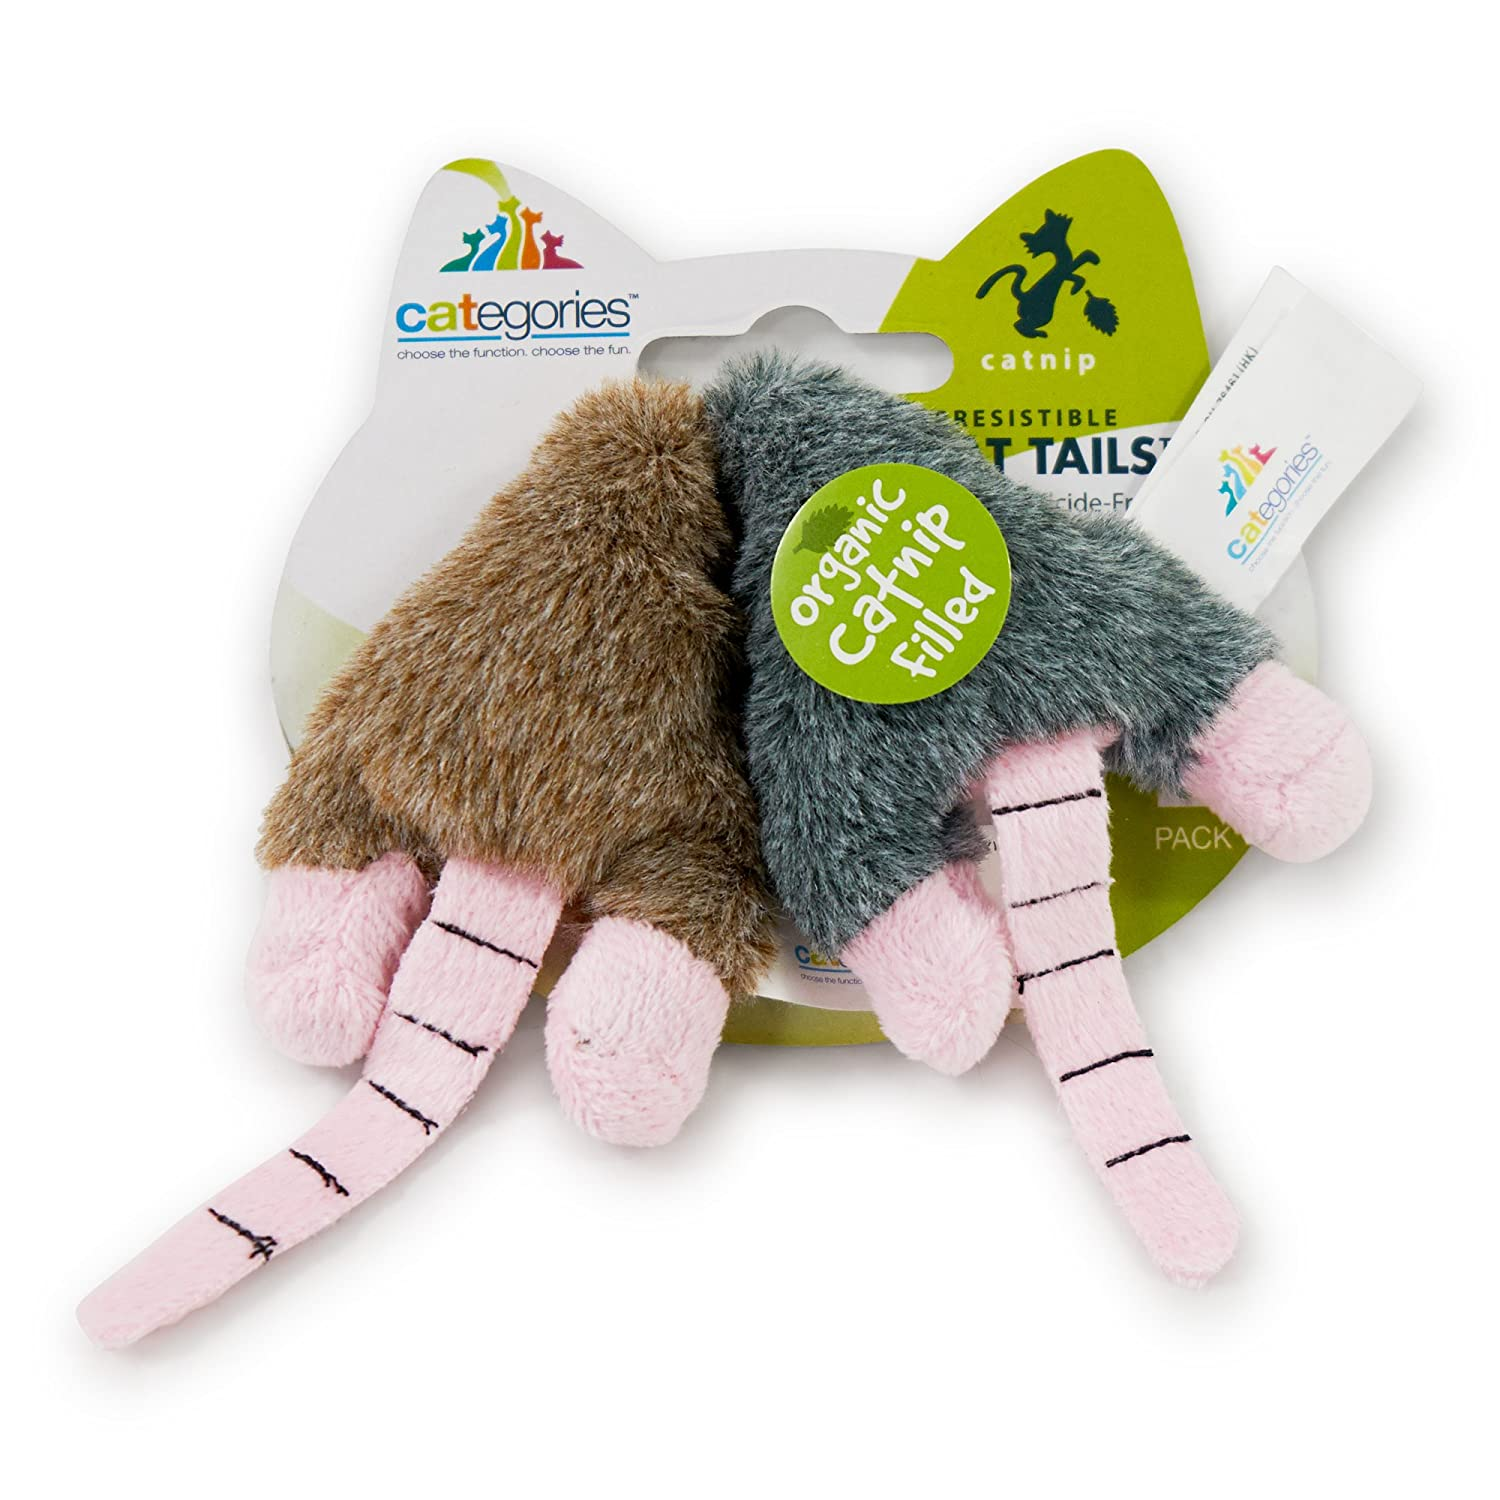 Mini Mice Twin Pack Funny Enticing Crinkle Chasing Cuddling Soft Plush Interactive Boredom Relief Catnip Filled Cat Toys Pet Craft Supply Co